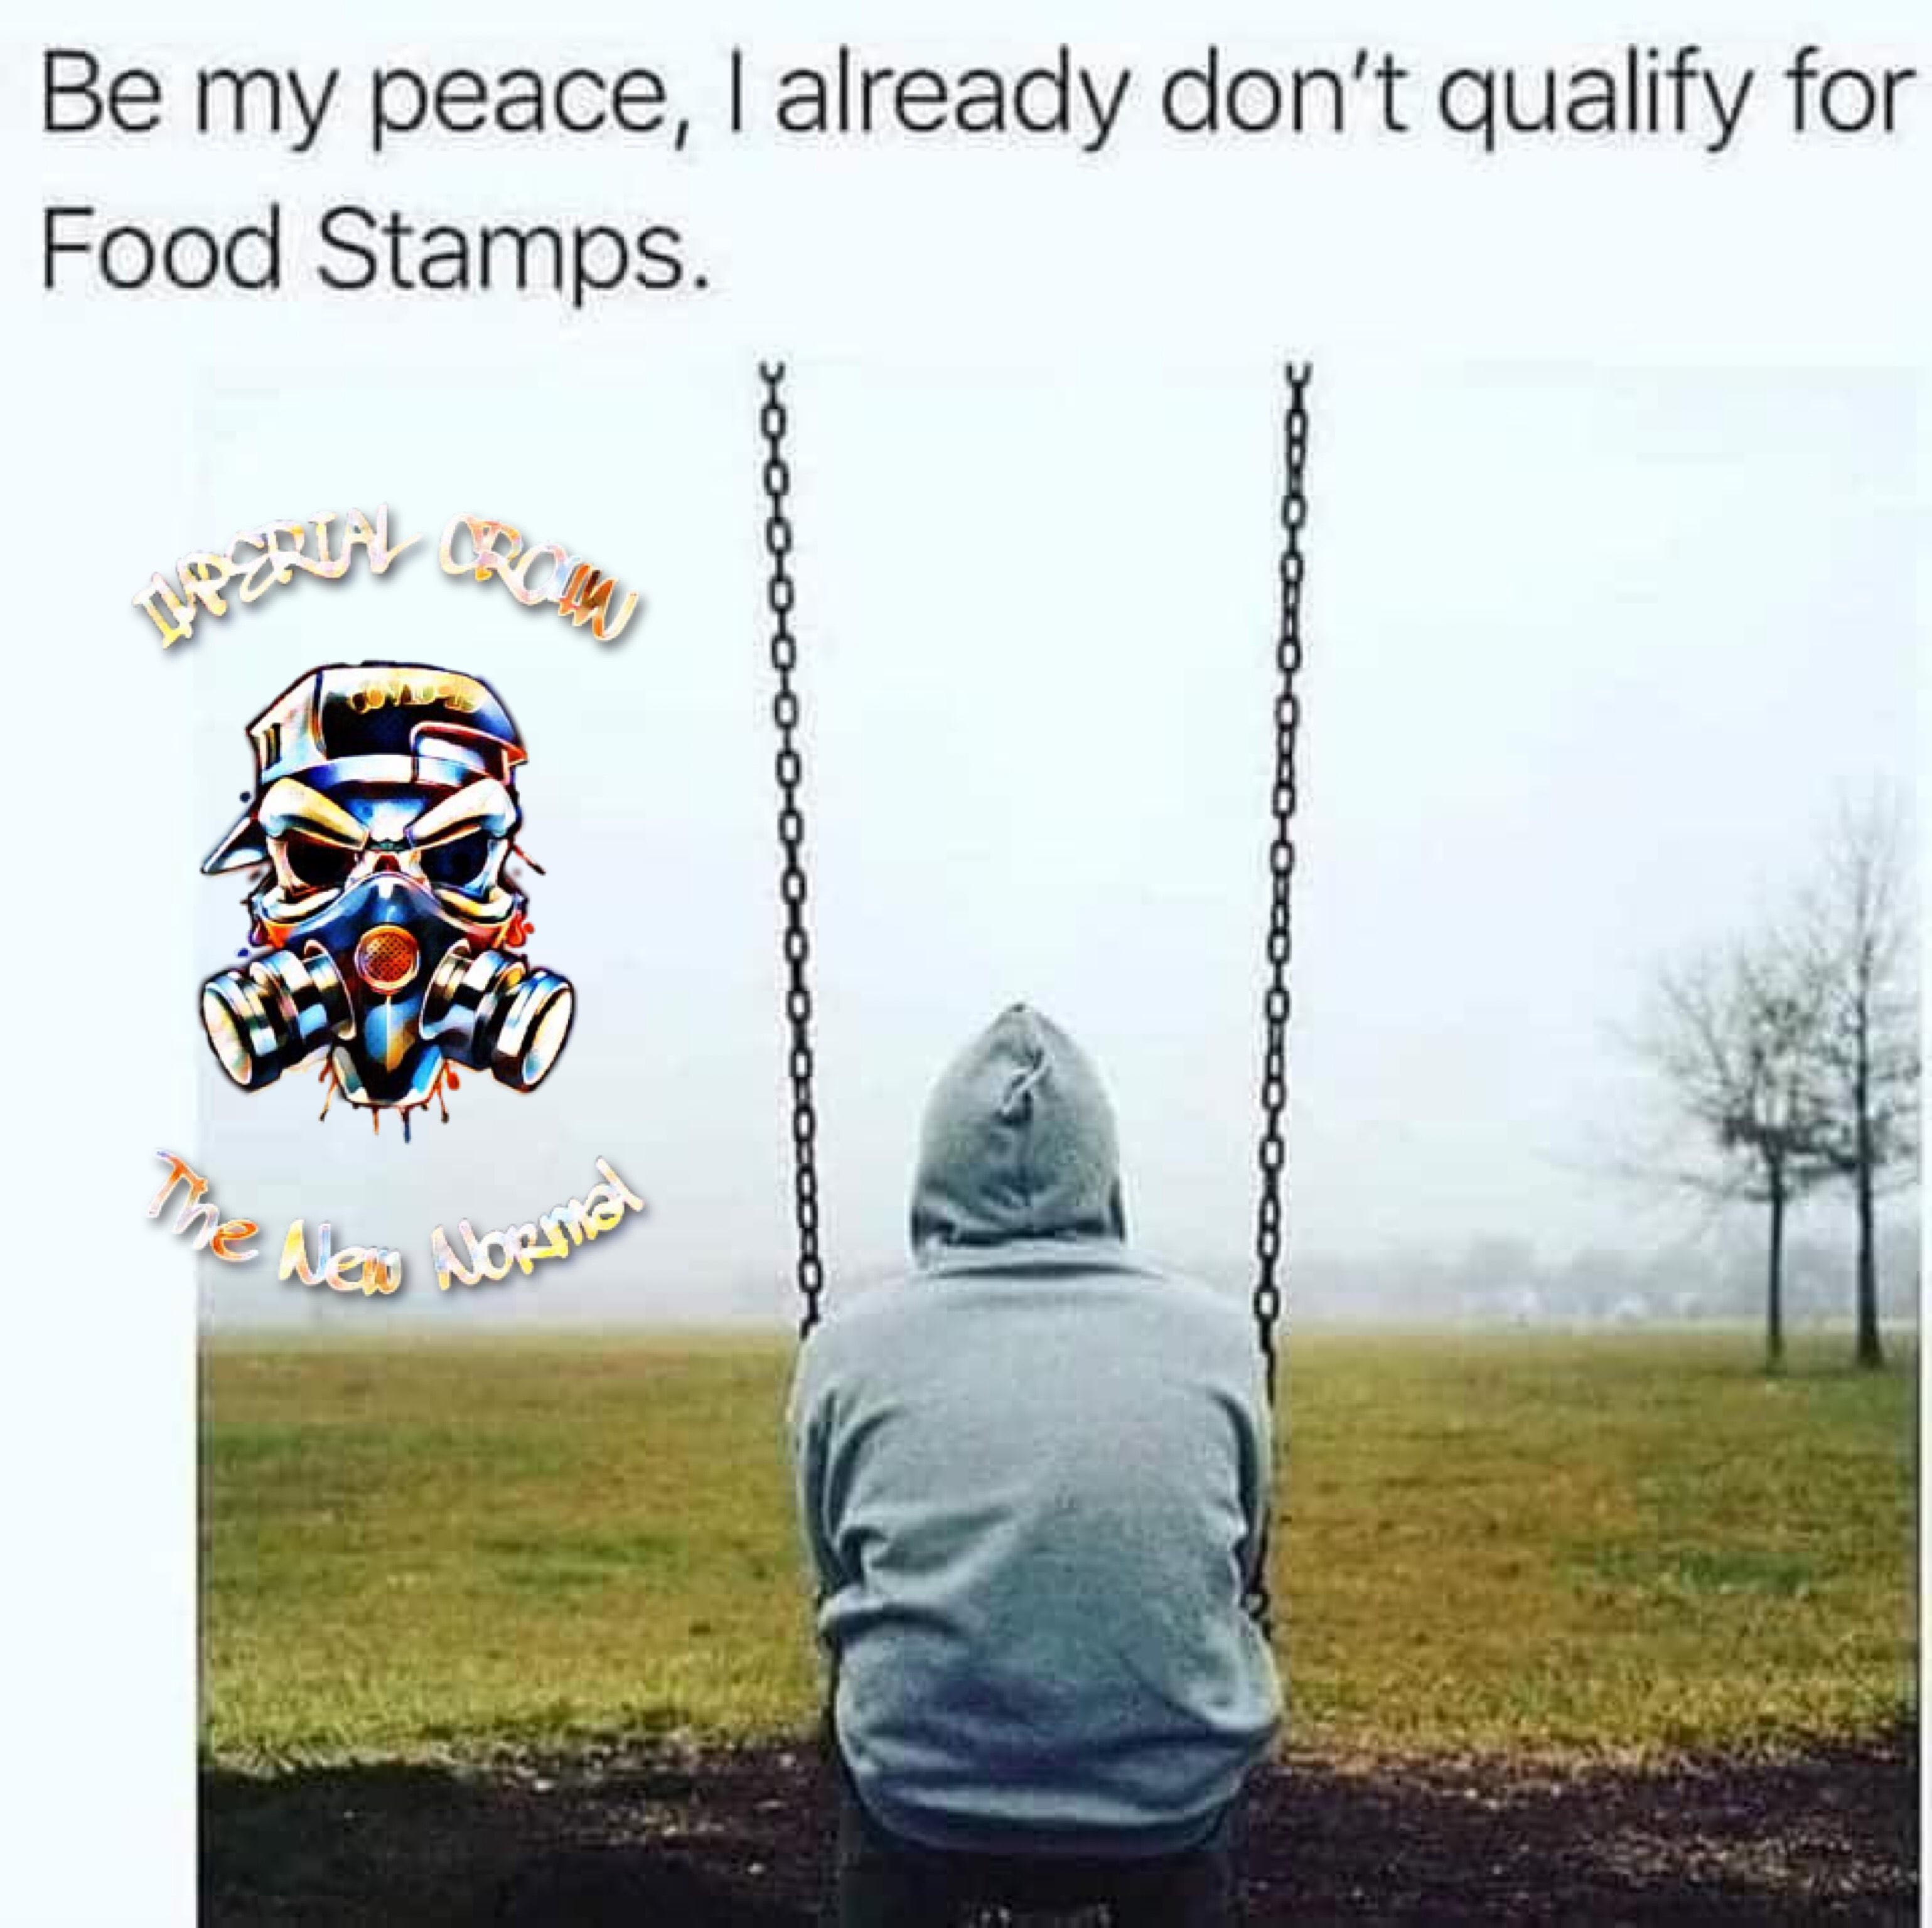 Be my peace i already don't qualify for food stamps